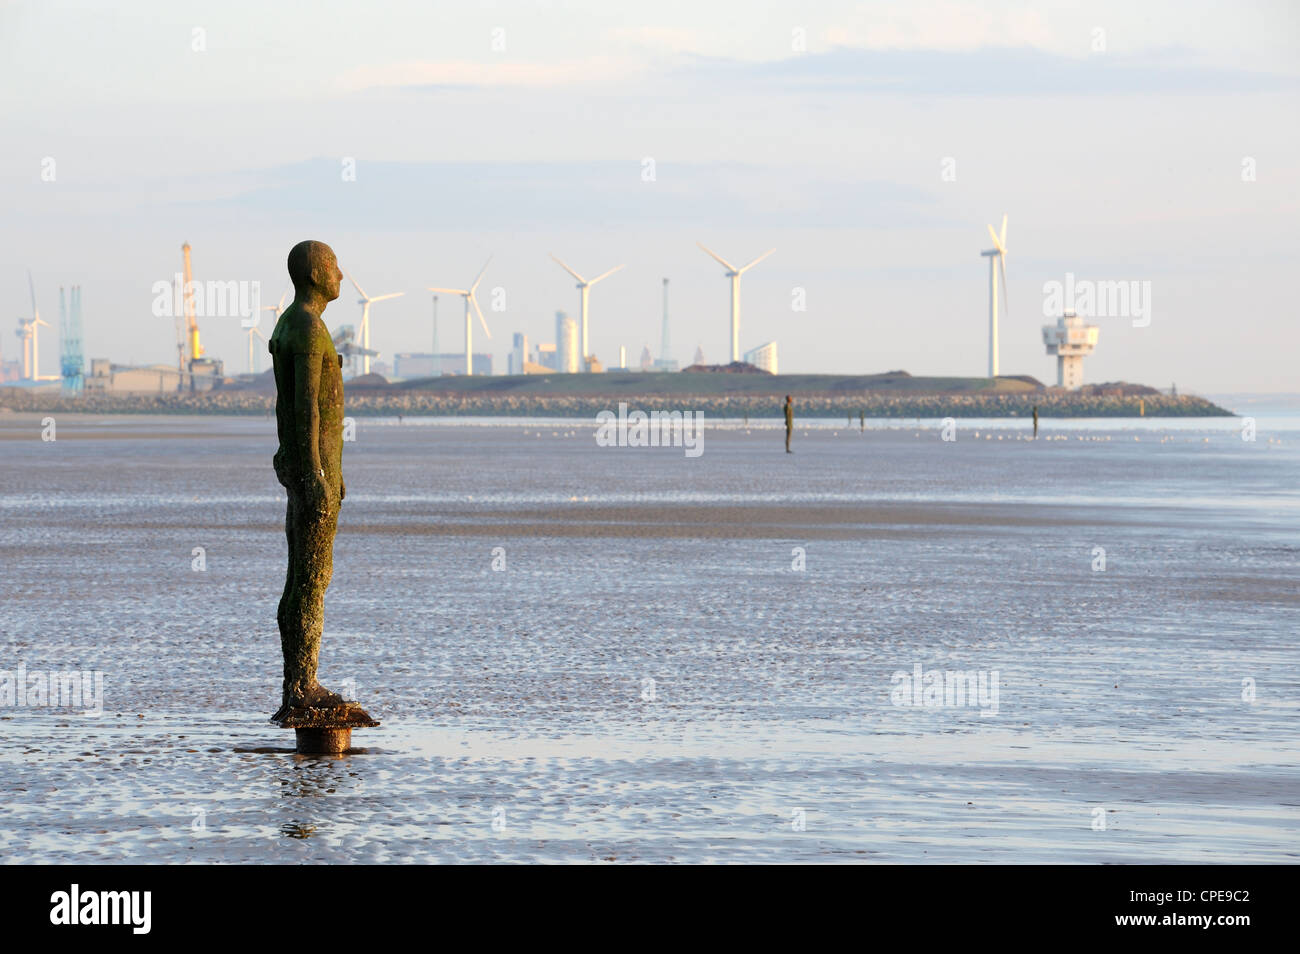 Antony Gormley sculpture, Another Place, Crosby Beach, Merseyside, England, United Kingdom, Europe - Stock Image